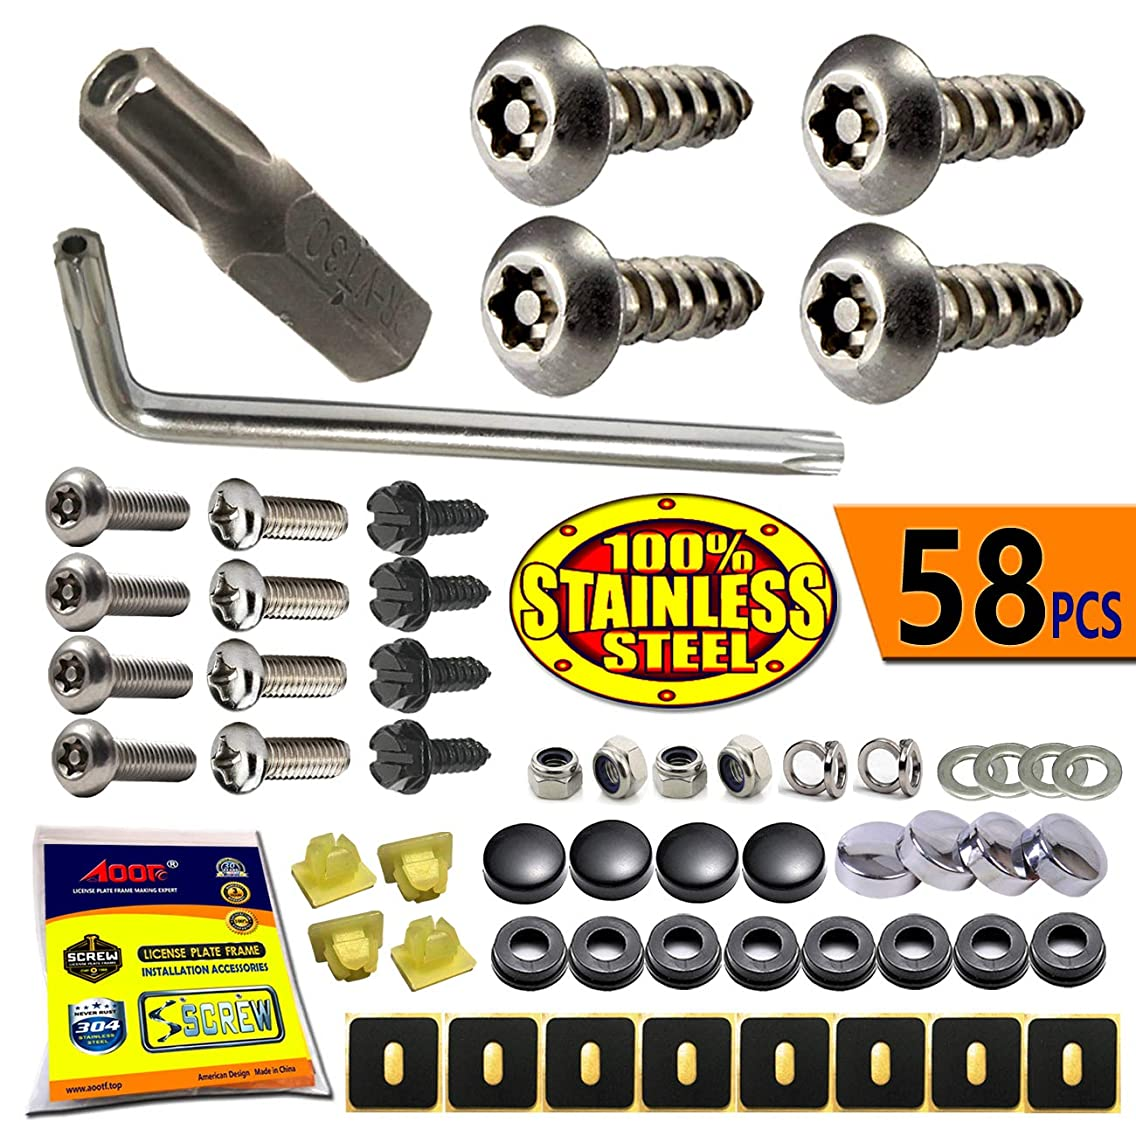 License Plate Screws Anti Theft - Stainless Steel Security Screws License Plate Bolts Fasteners,Tamper Proof Protection for License Plates on Cars Trucks, Black Chrome Caps -58PC Ultimate Set